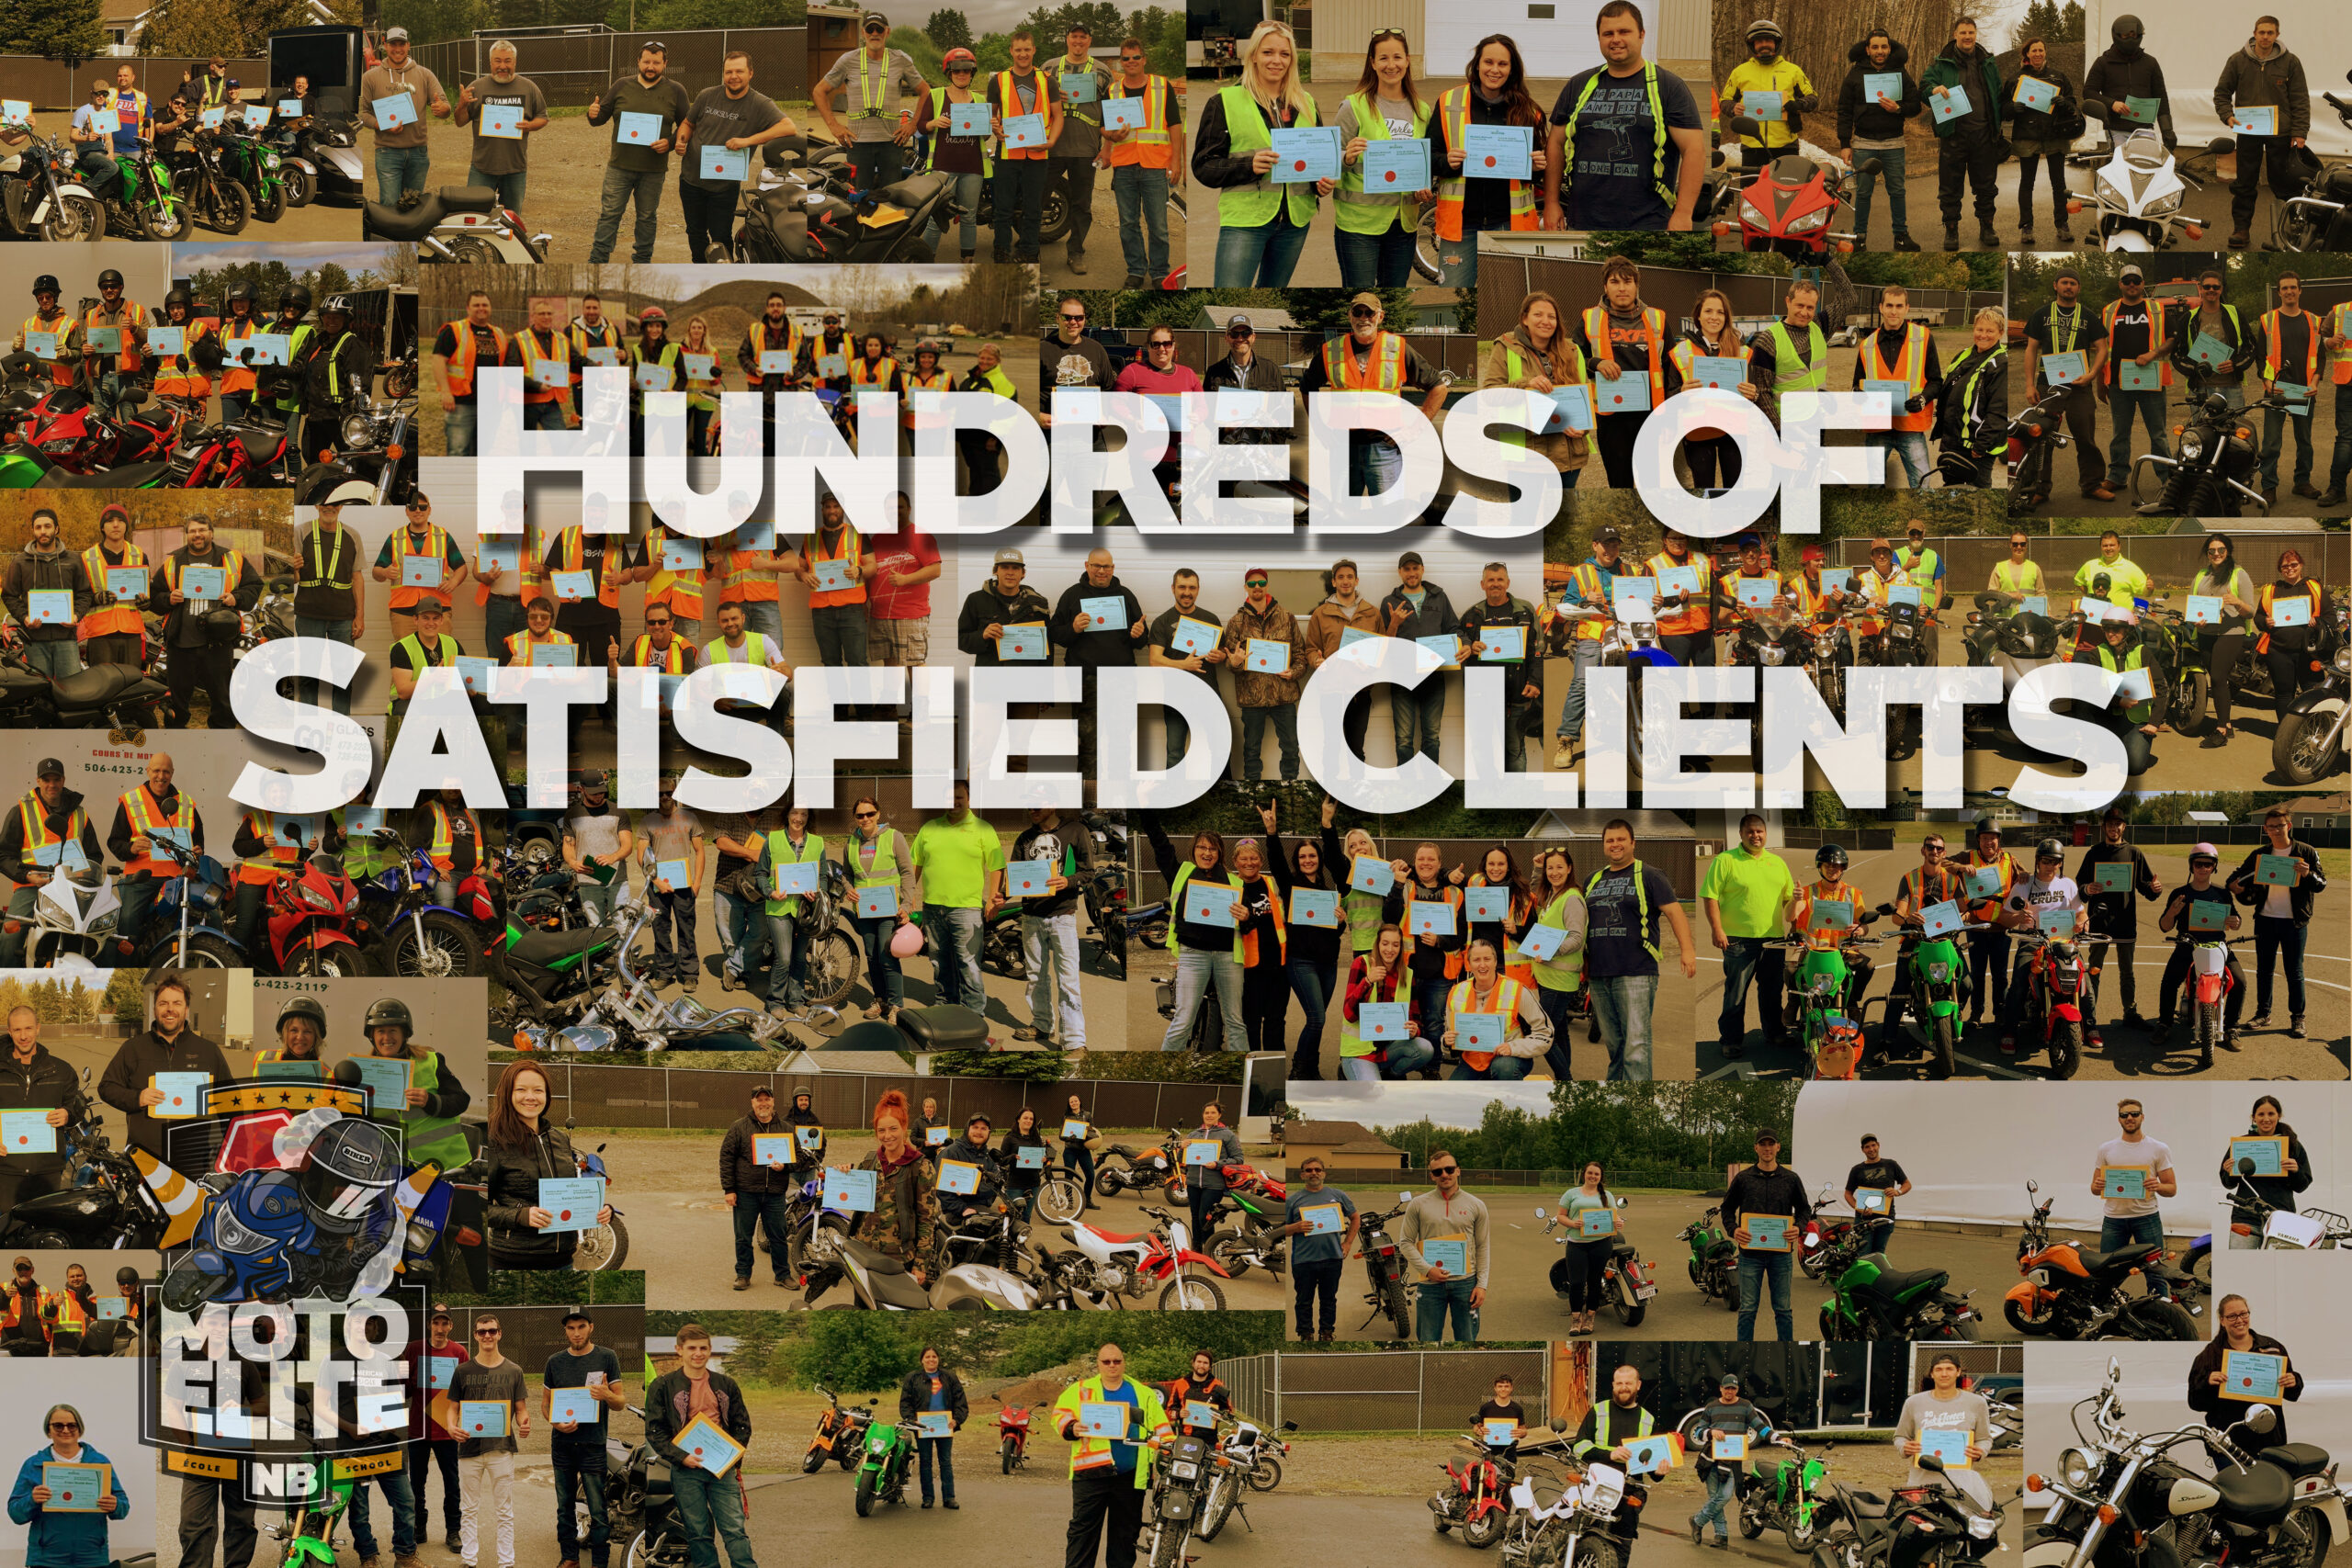 Hundreds of satisfied clients